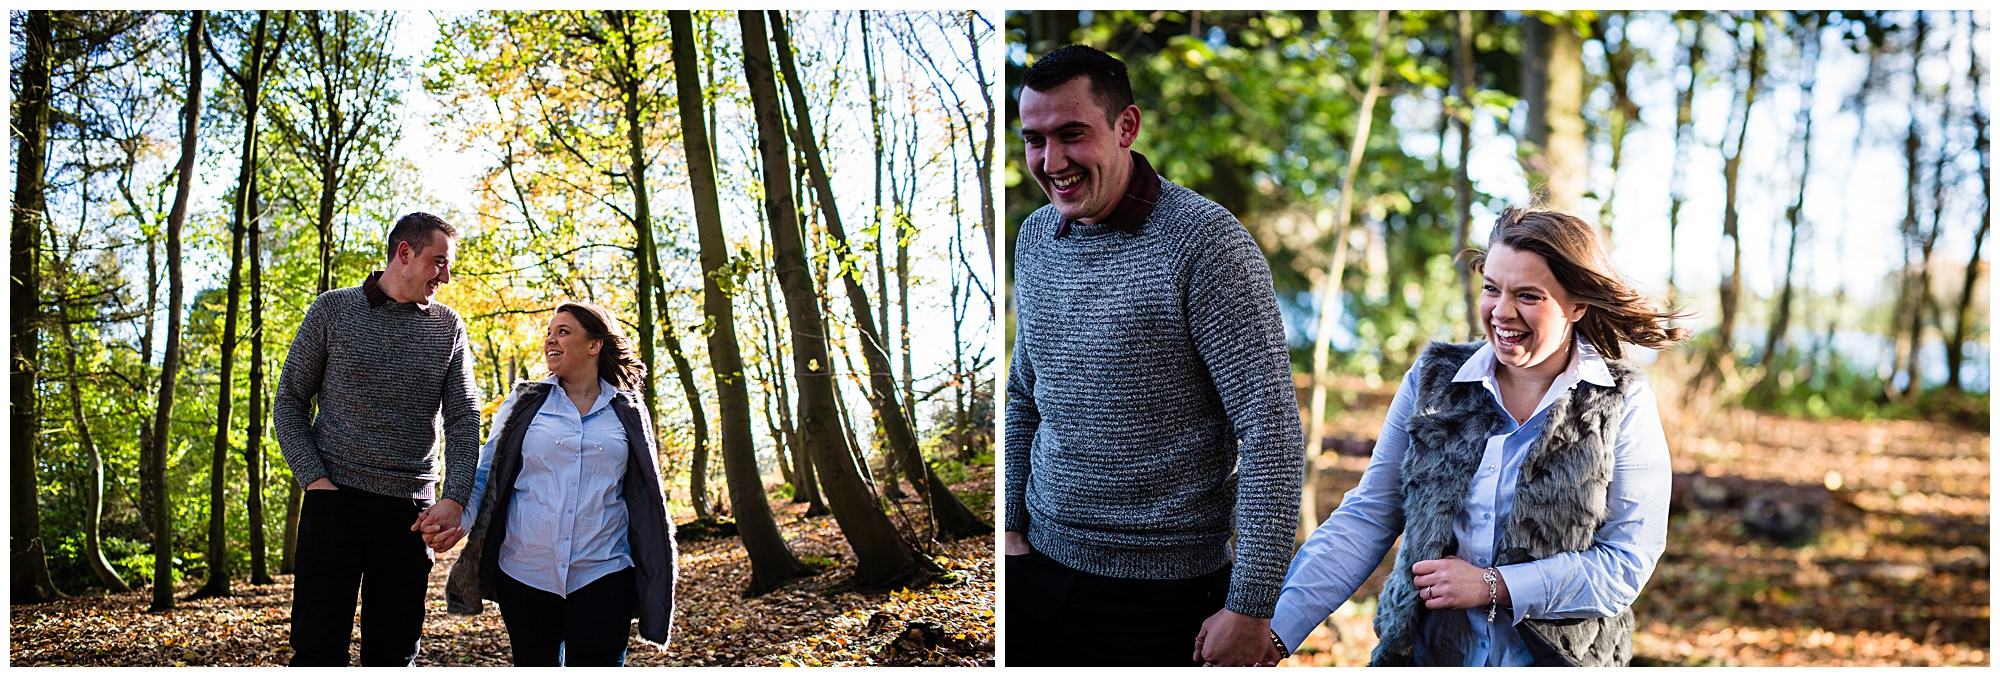 kirsty and luke walking around colemere having a giggle - Shropshire Engagement Photographer